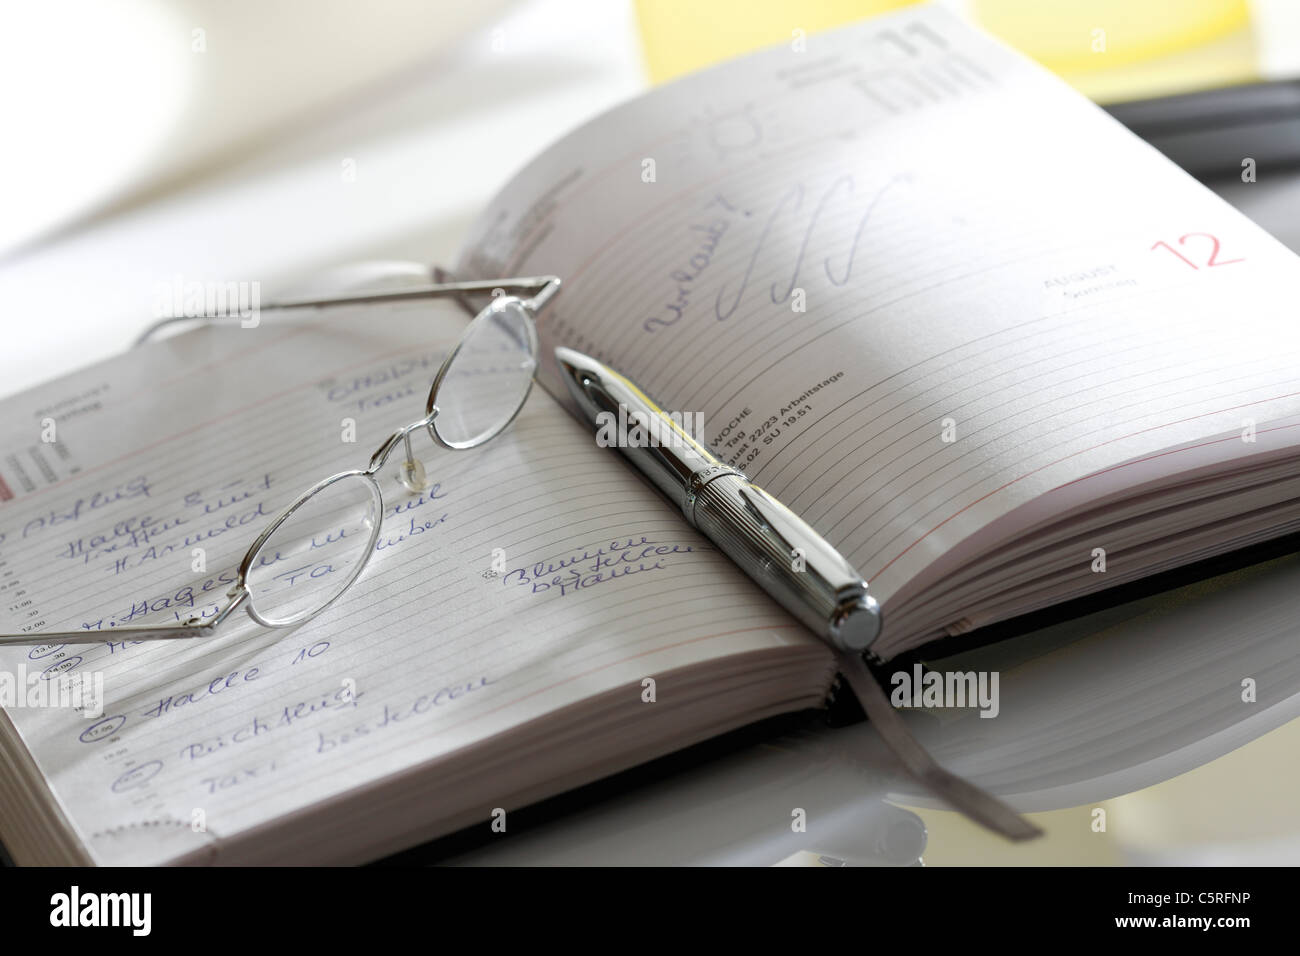 Notebook, eyeglasses and pen, close-up - Stock Image